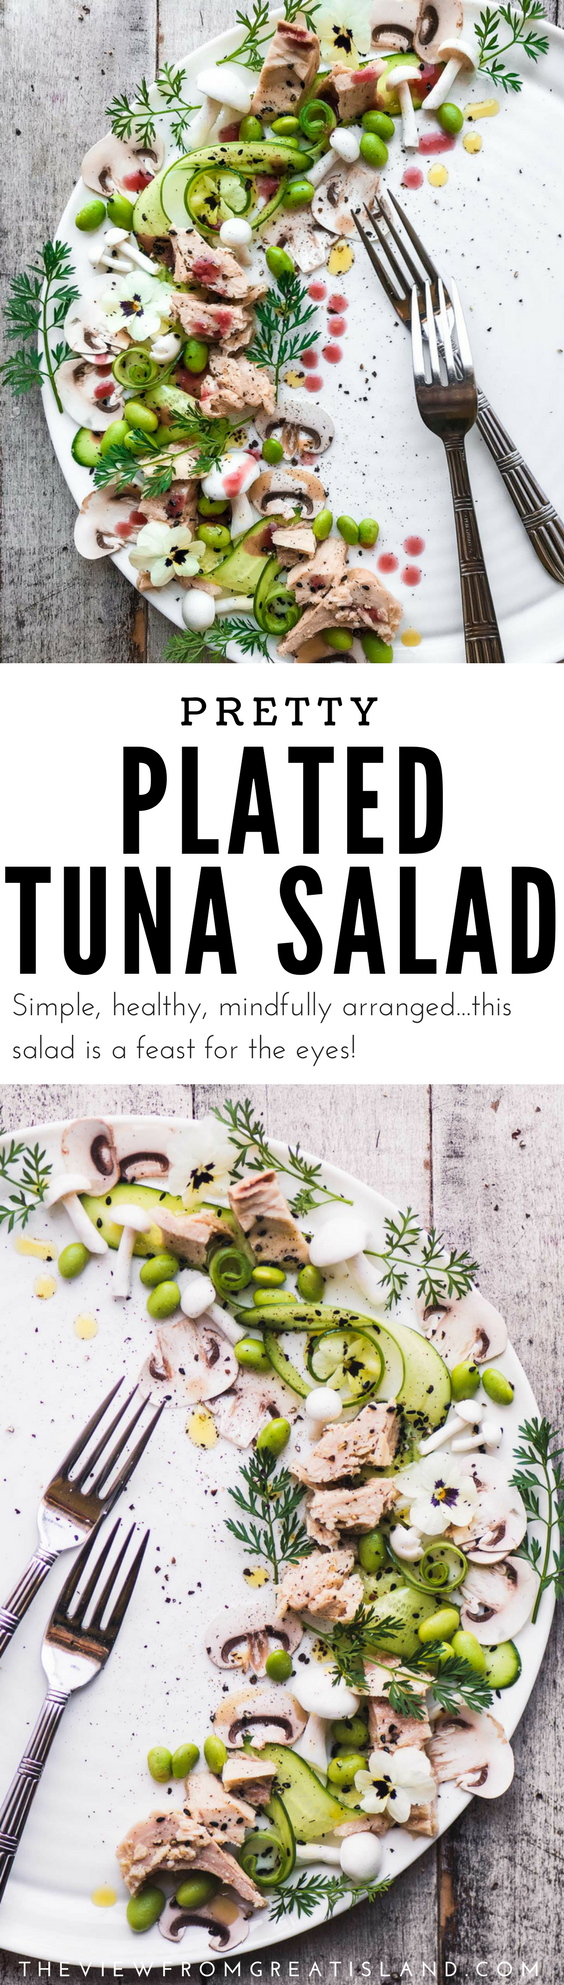 This Pretty Plated Tuna Salad is a fun reminder that the simplest foods can provide a feast for all the senses. Make this elegant salad for a brunch, luncheon, shower, or just because. #tuna #cannedtuna #tunasalad #salad #plating #presentation #brunch, #mothersdayrecipe #easterrecipe #valentinesdayrecipe #showerrecipe #mothersdaybrunch #genova #seafood #healthy #glutenfree #paleo #whole30 #lowcarb #weightwatchers